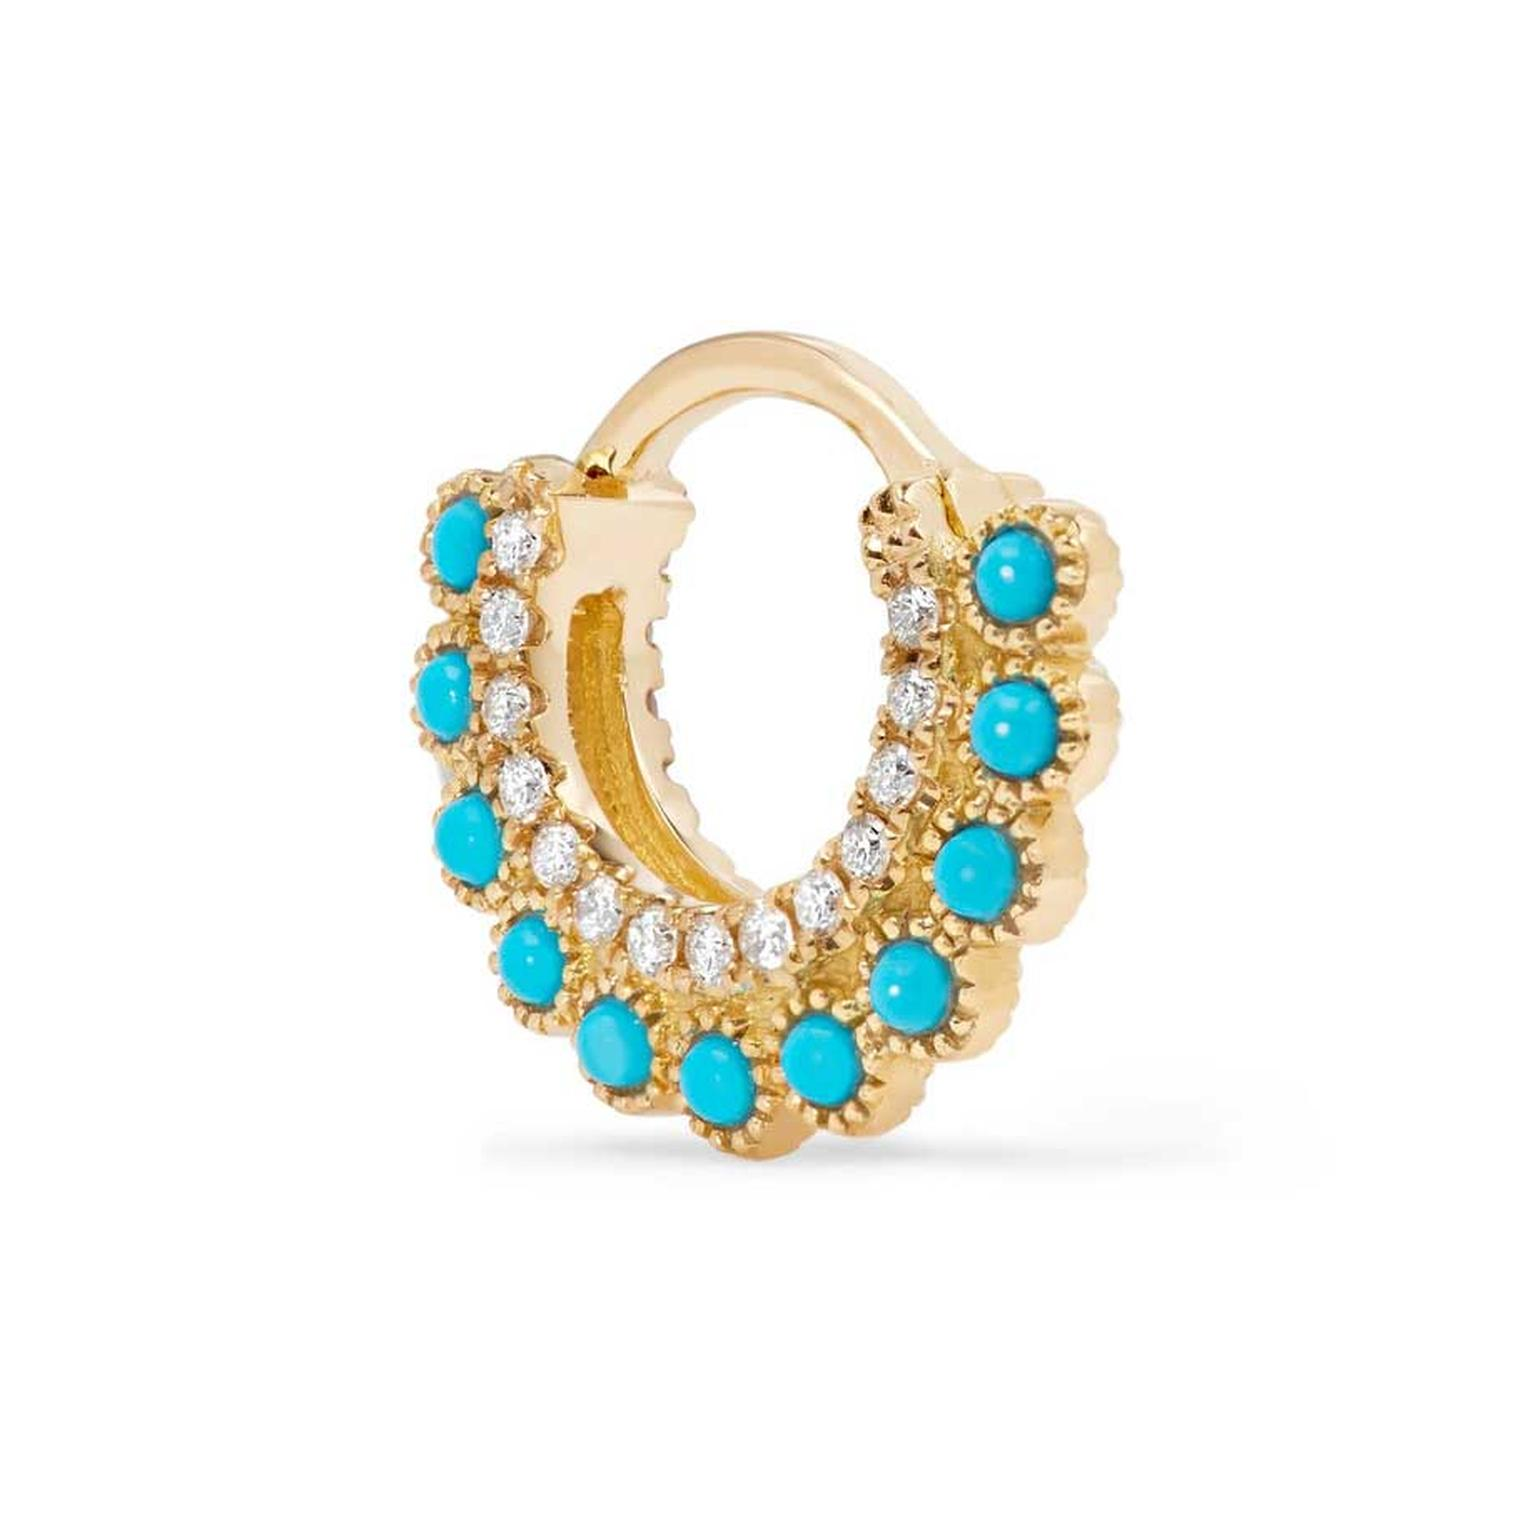 Maria Tash single turquoise opal and diamond huggie